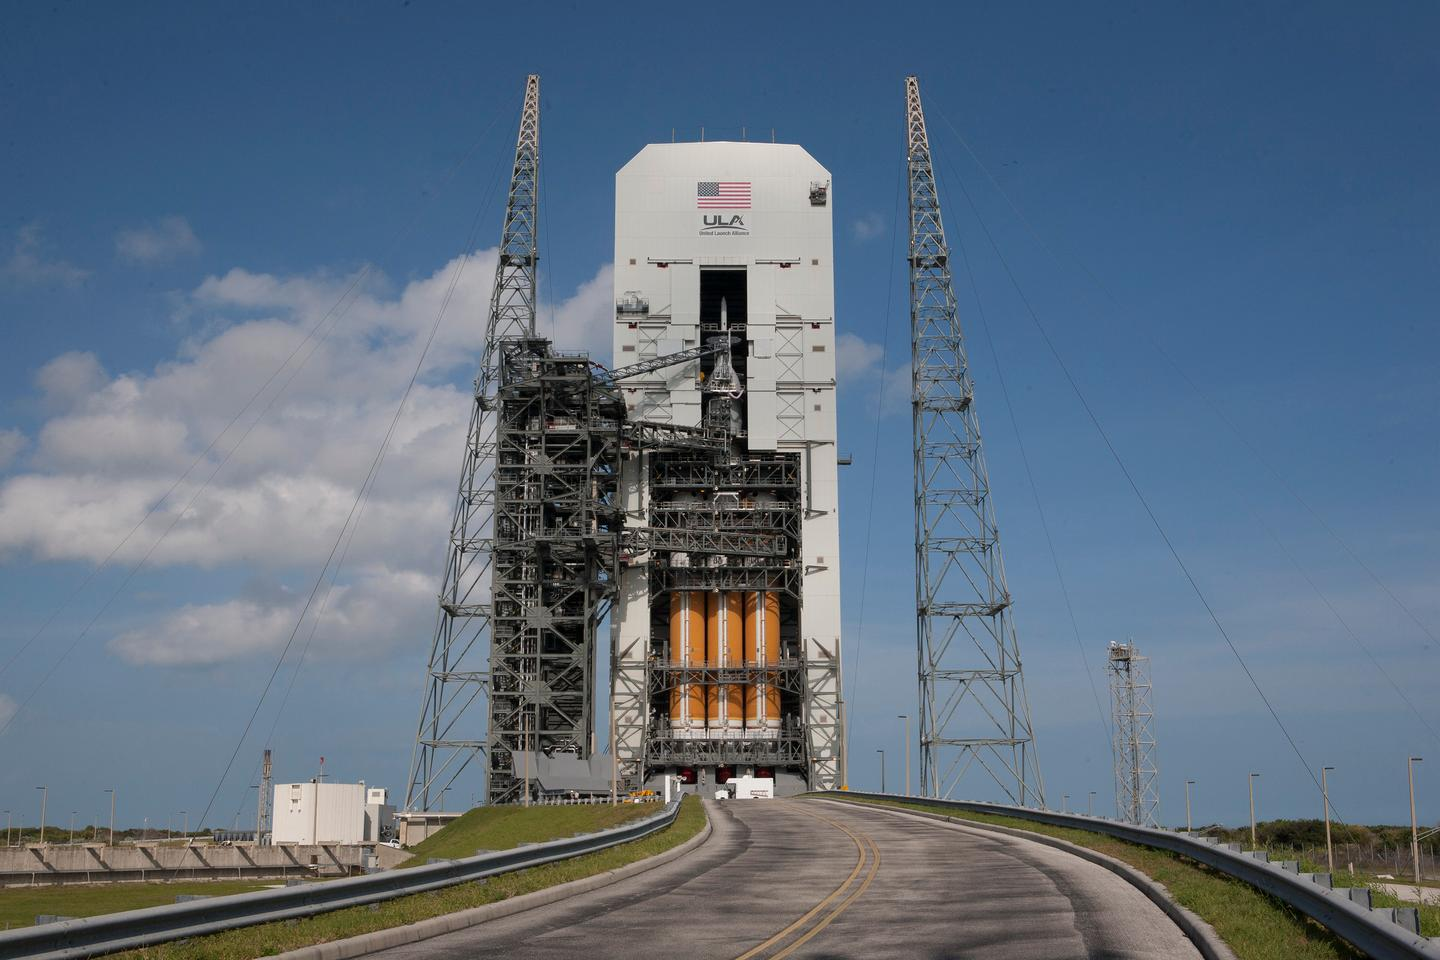 The Orion and Delta IV Heavy rocket stacked for launch at Space Launch Complex 37 at Cape Canaveral Air Force Station (Photo: NASA/Kim Shiflett)